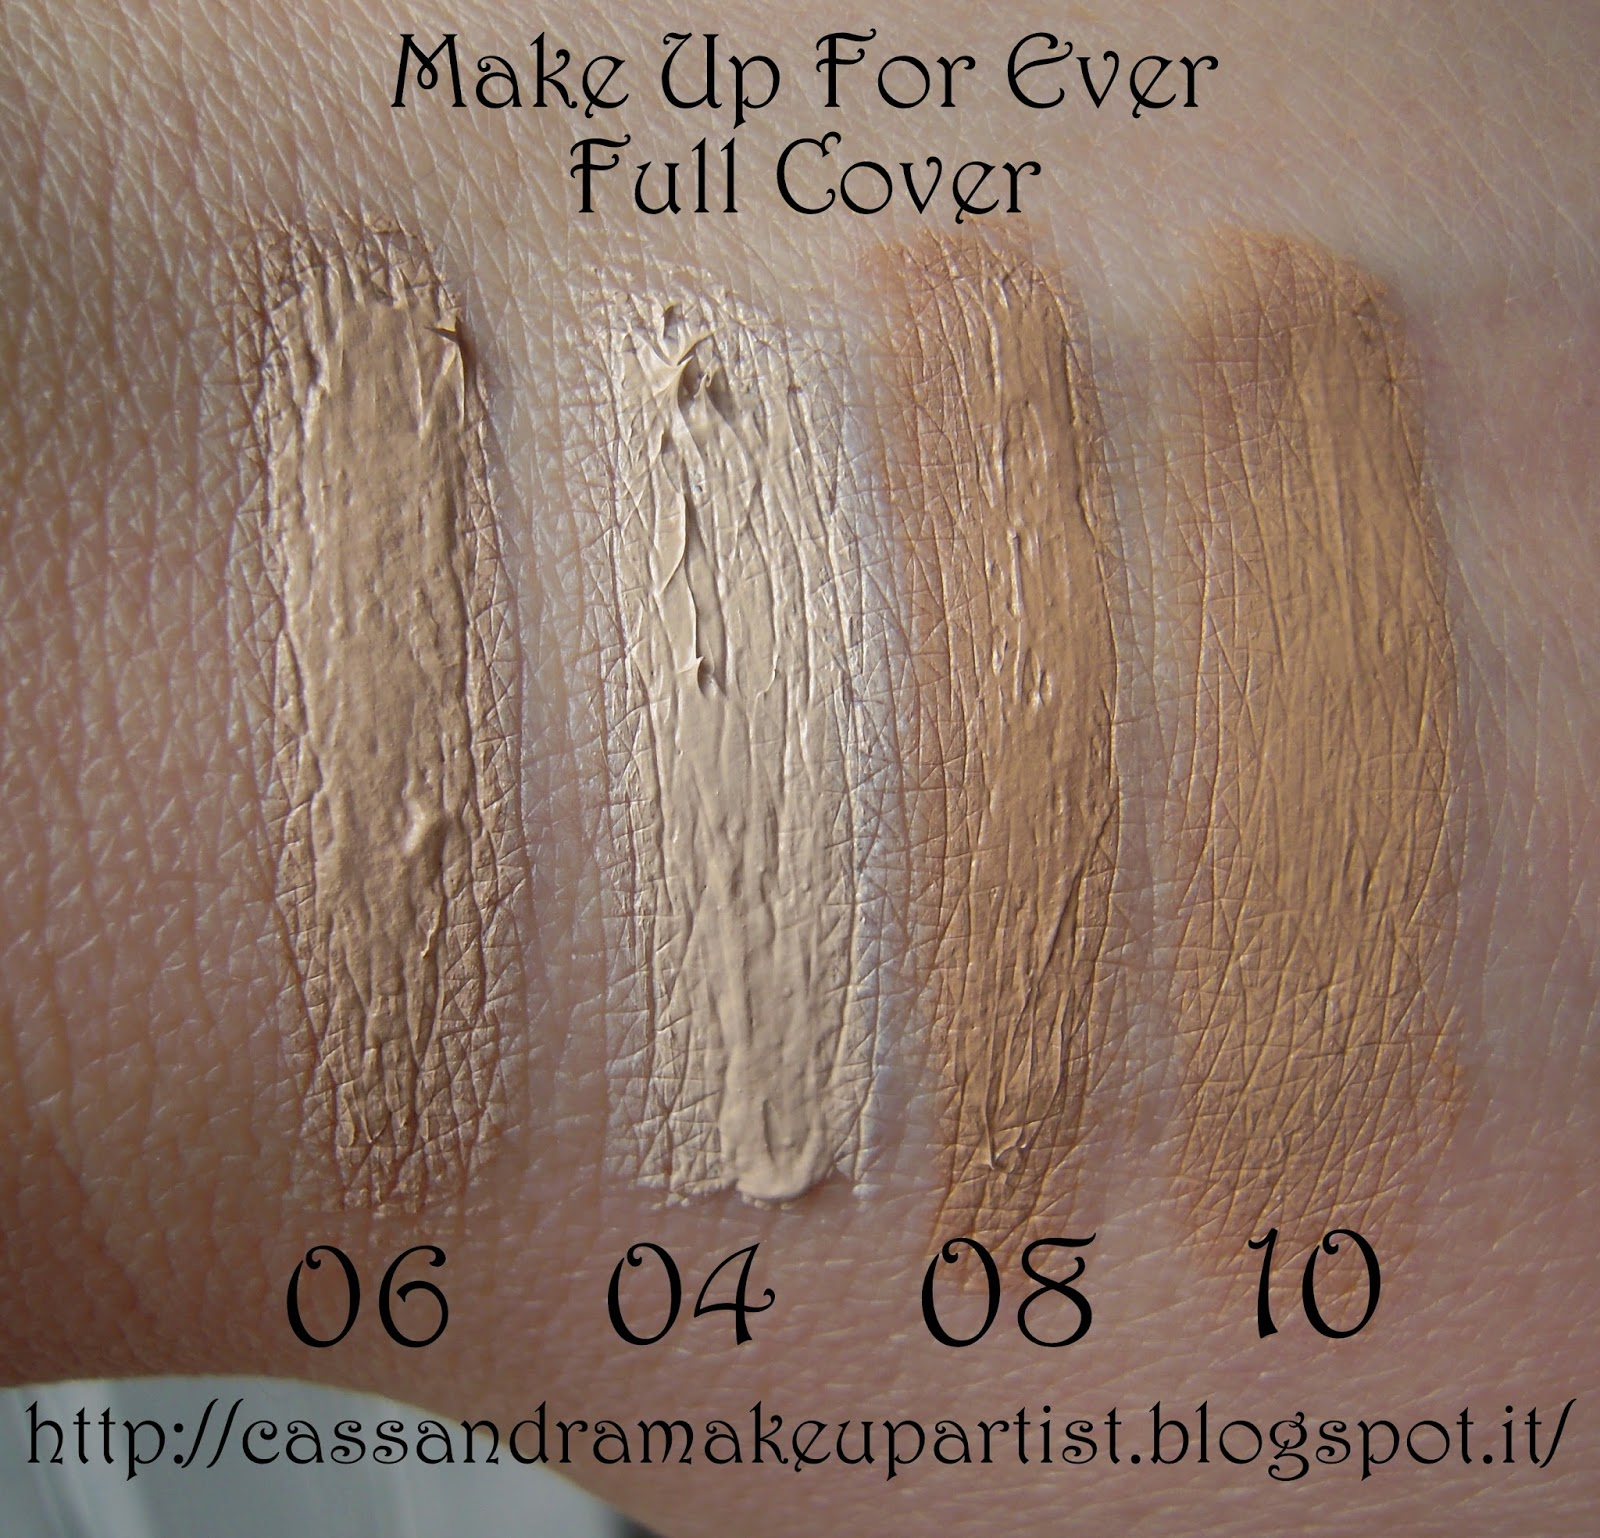 FULL COVER CONCEALER - MUFE - make up for ever - swatch - recensione - review - 04 - 06 - 08 - 10